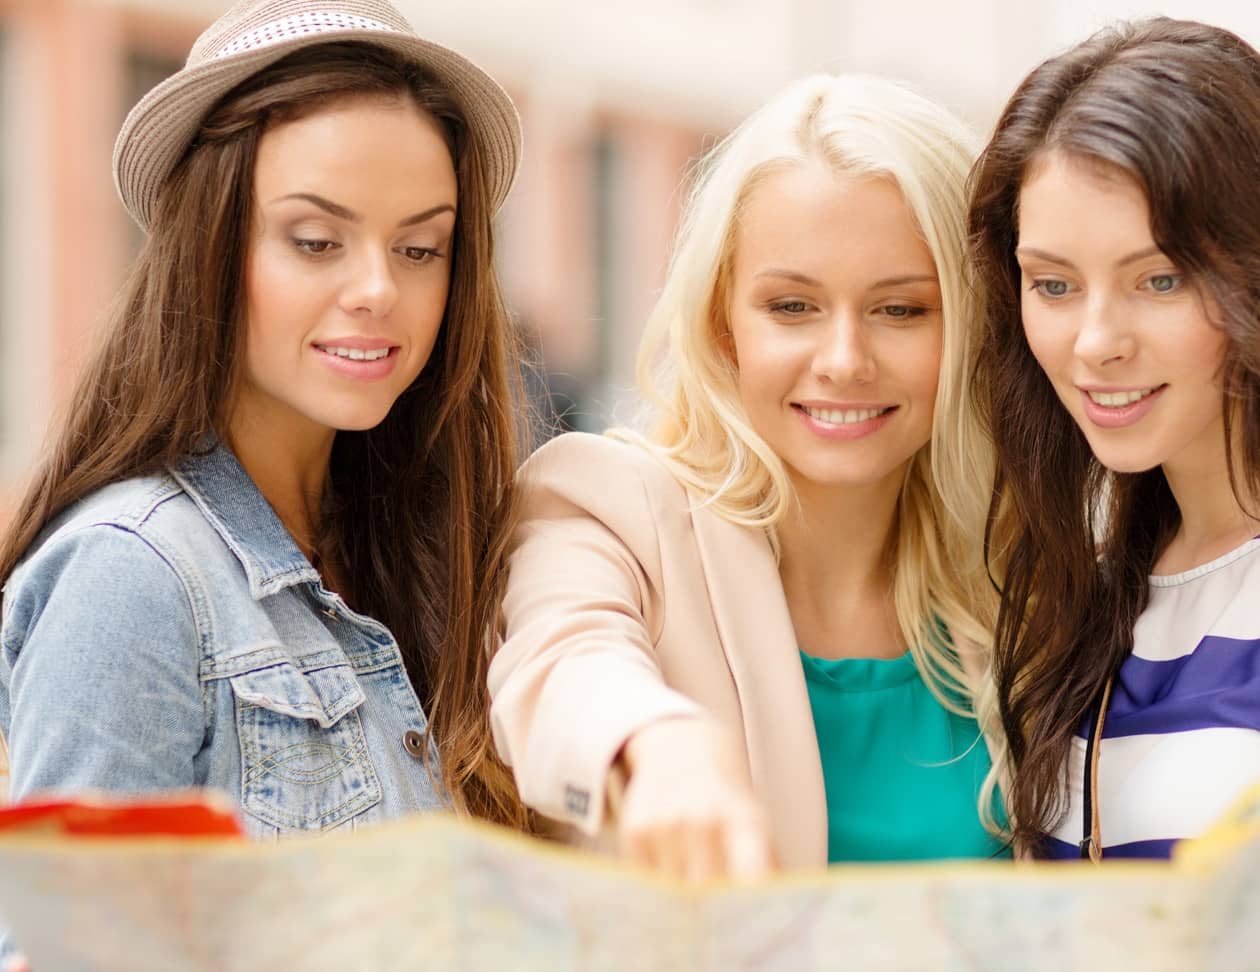 Three women looking at a map